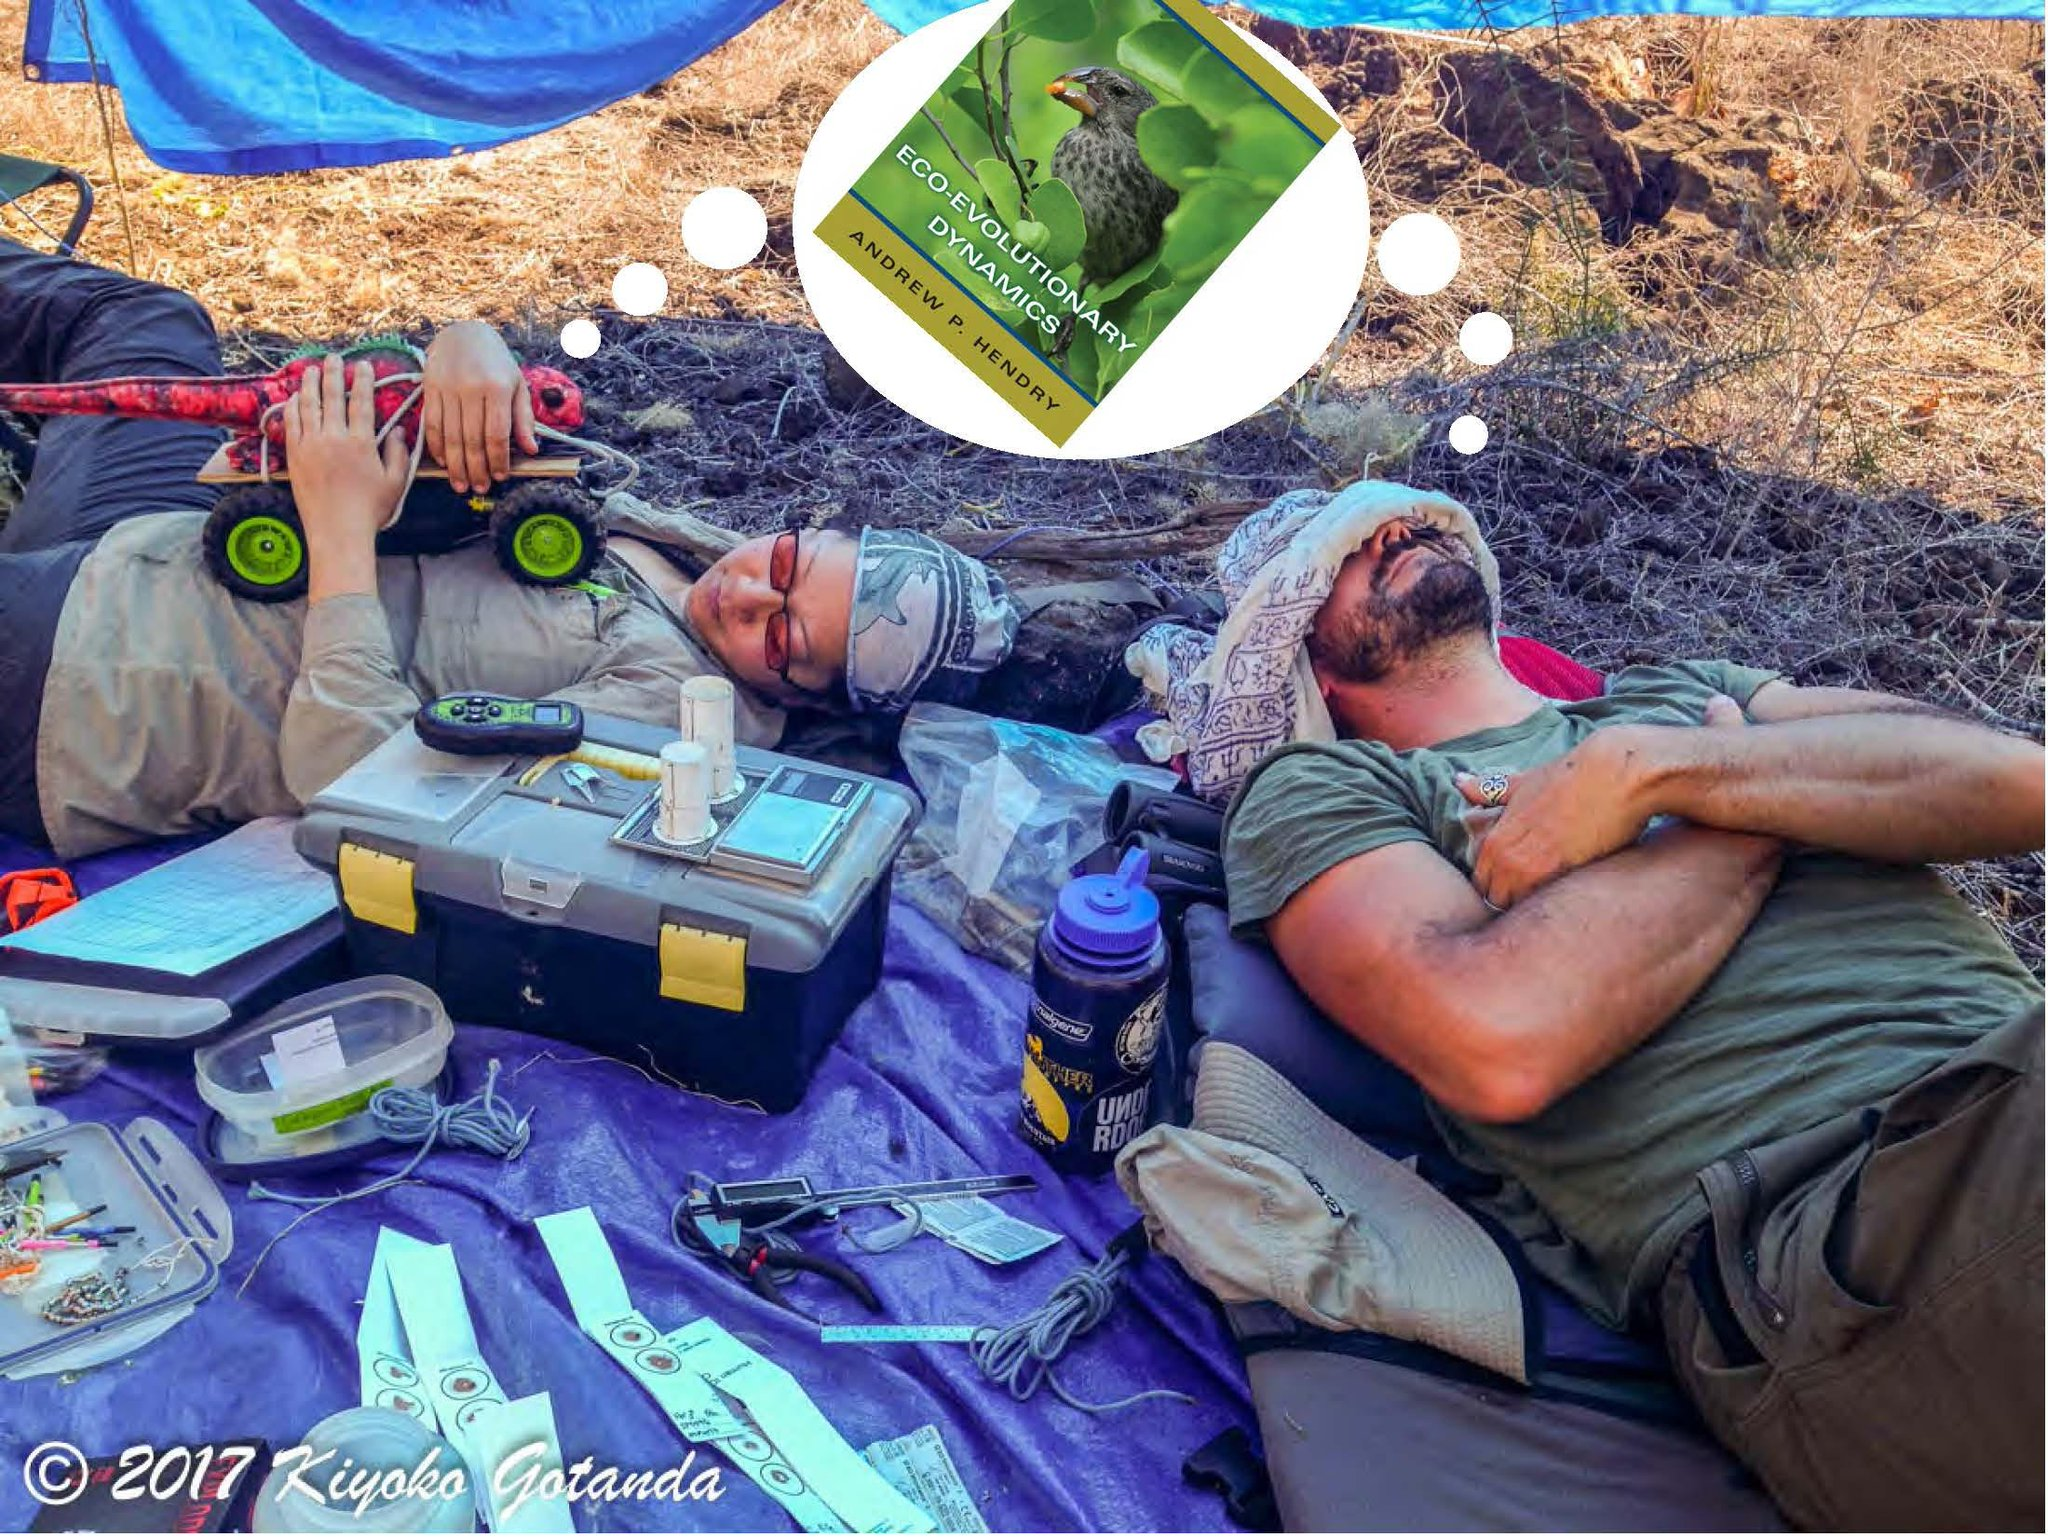 Isabela the #marineiguana+@chavecito76 #peoplewhofellasleepreadingAndrewsbook in #Galapagos are dreaming eco-evo @EcoEvoEvoEco https://t.co/CZTXwmld5F